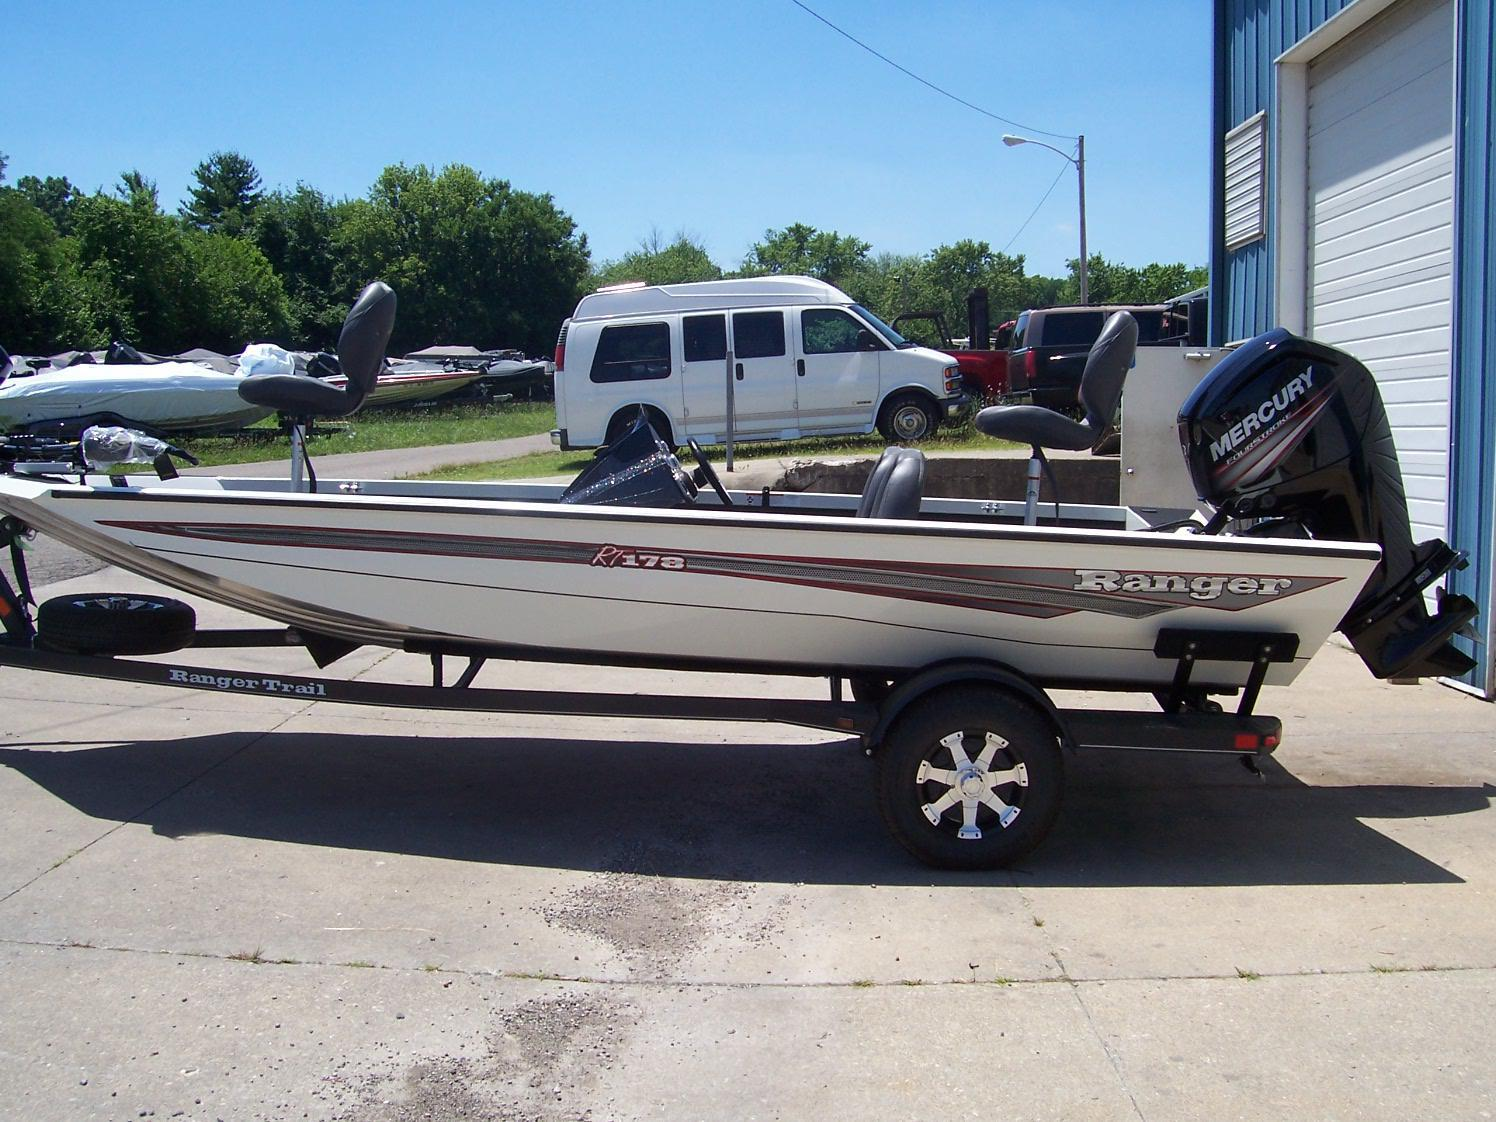 New Bass Ranger Rt178 boats for sale - boats.com